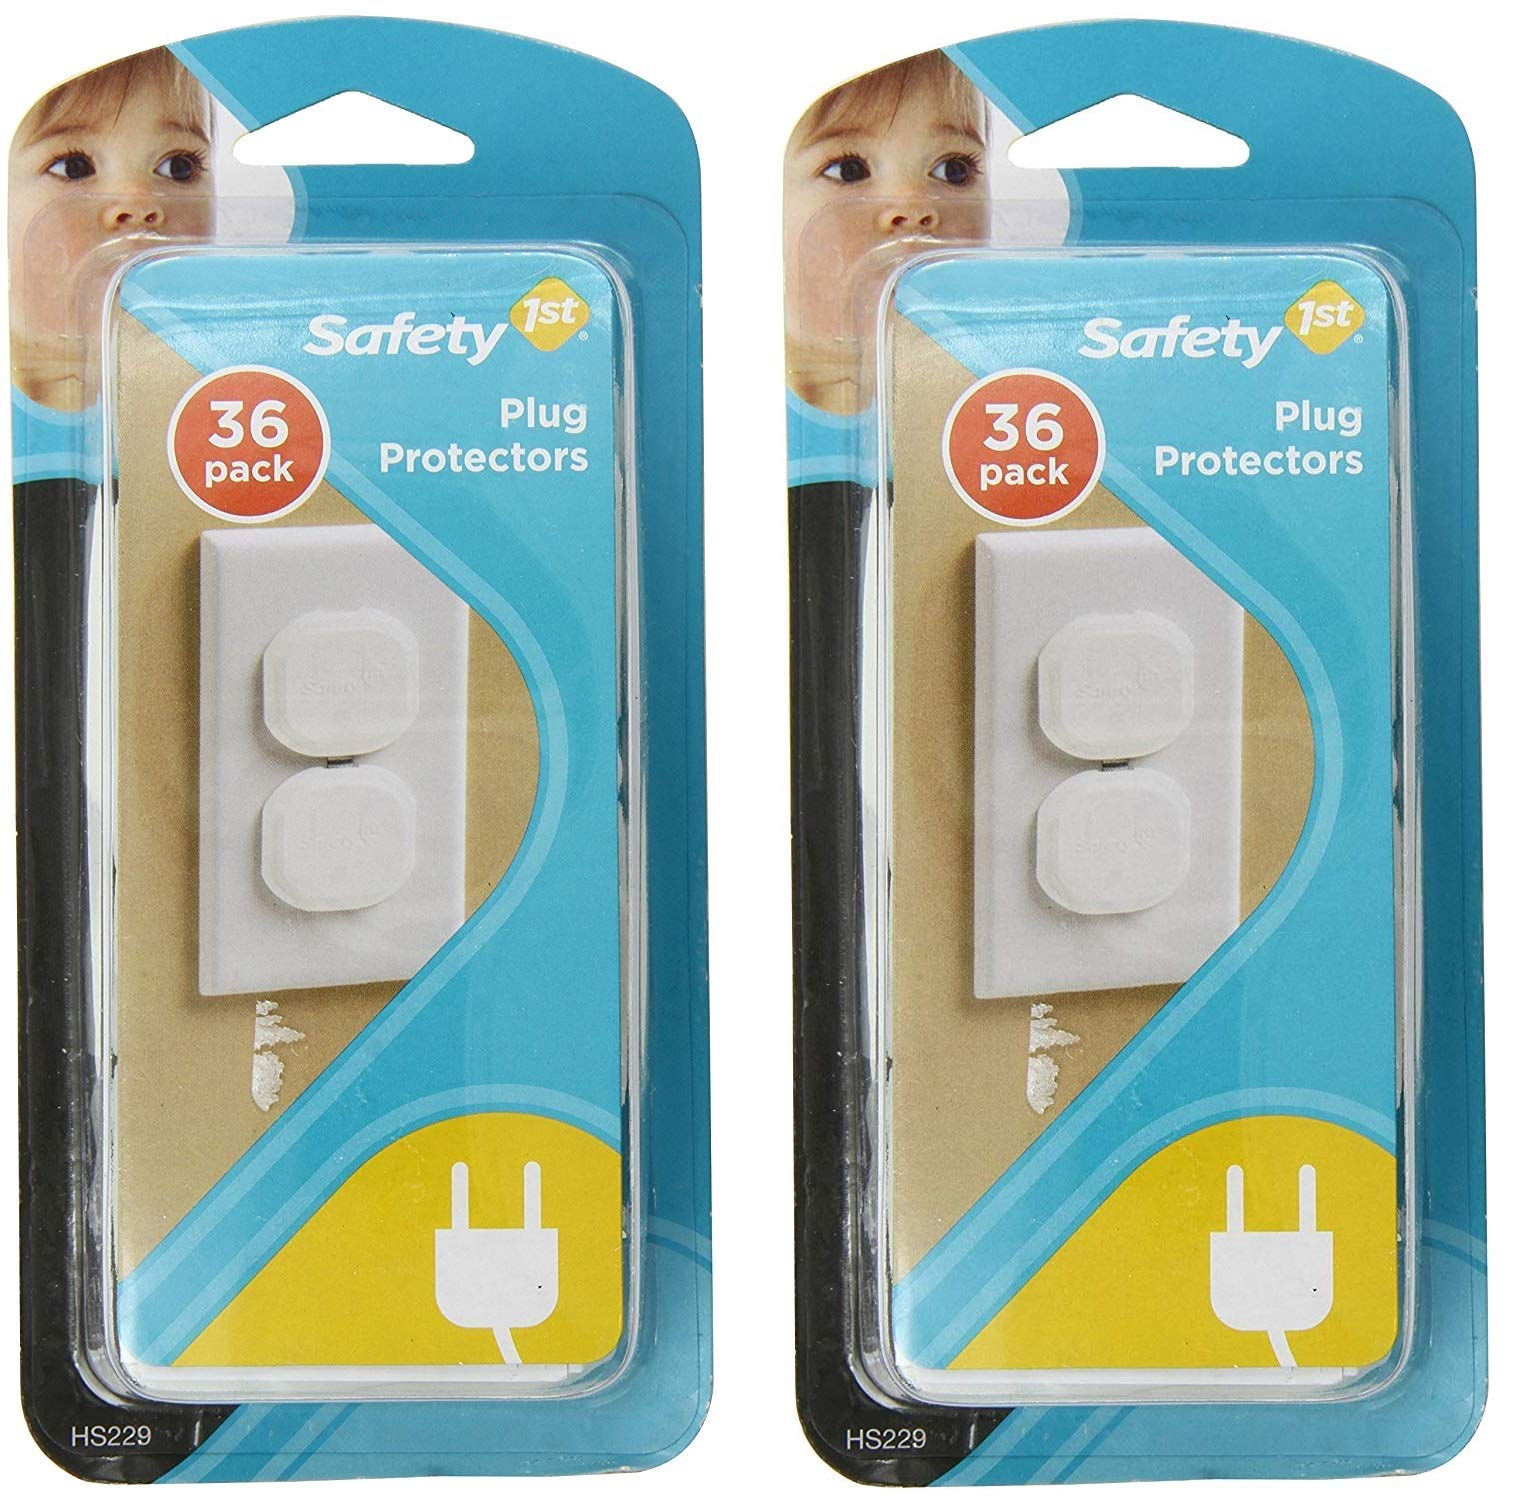 Safety 1st 72 Pack Secure Press Plug Protectors